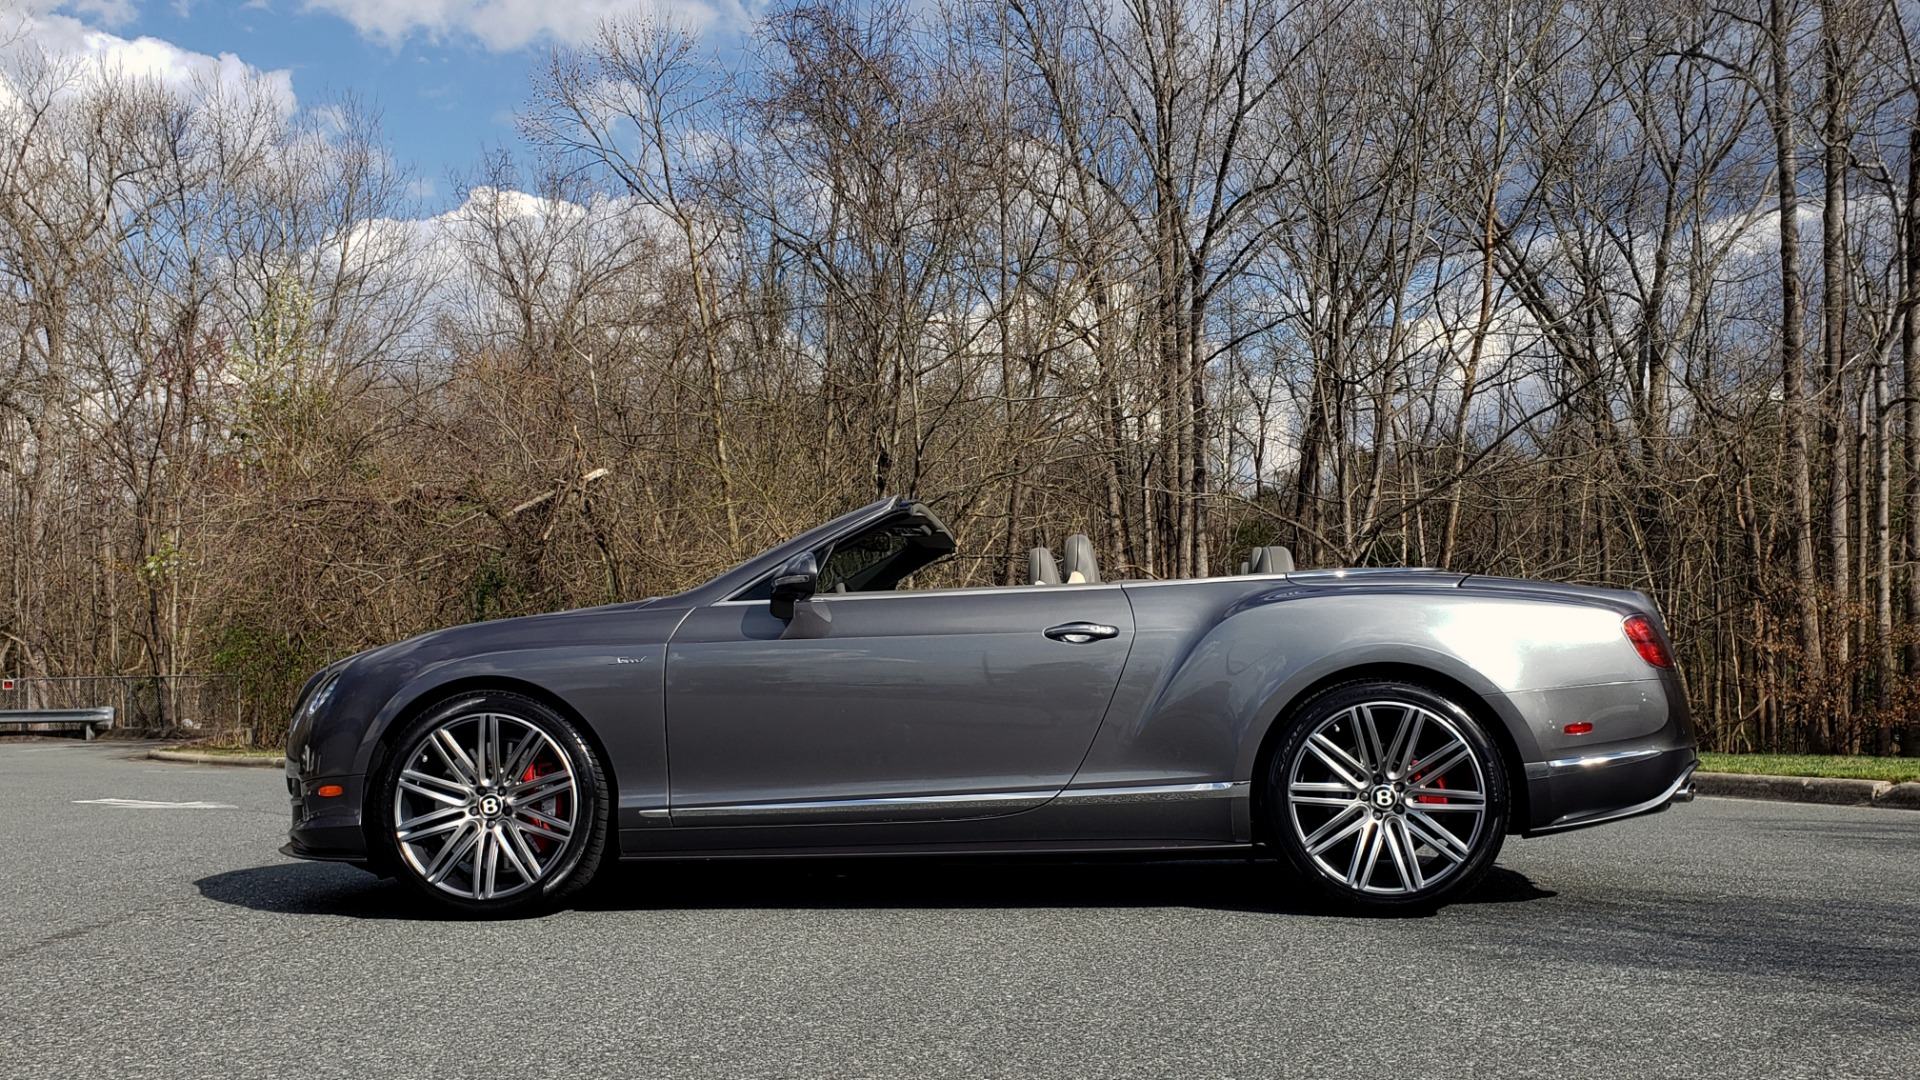 Used 2015 Bentley CONTINENTAL SPEED CONV / 6.0L W12 / NAV / VENT SEATS / REARVIEW for sale Sold at Formula Imports in Charlotte NC 28227 5